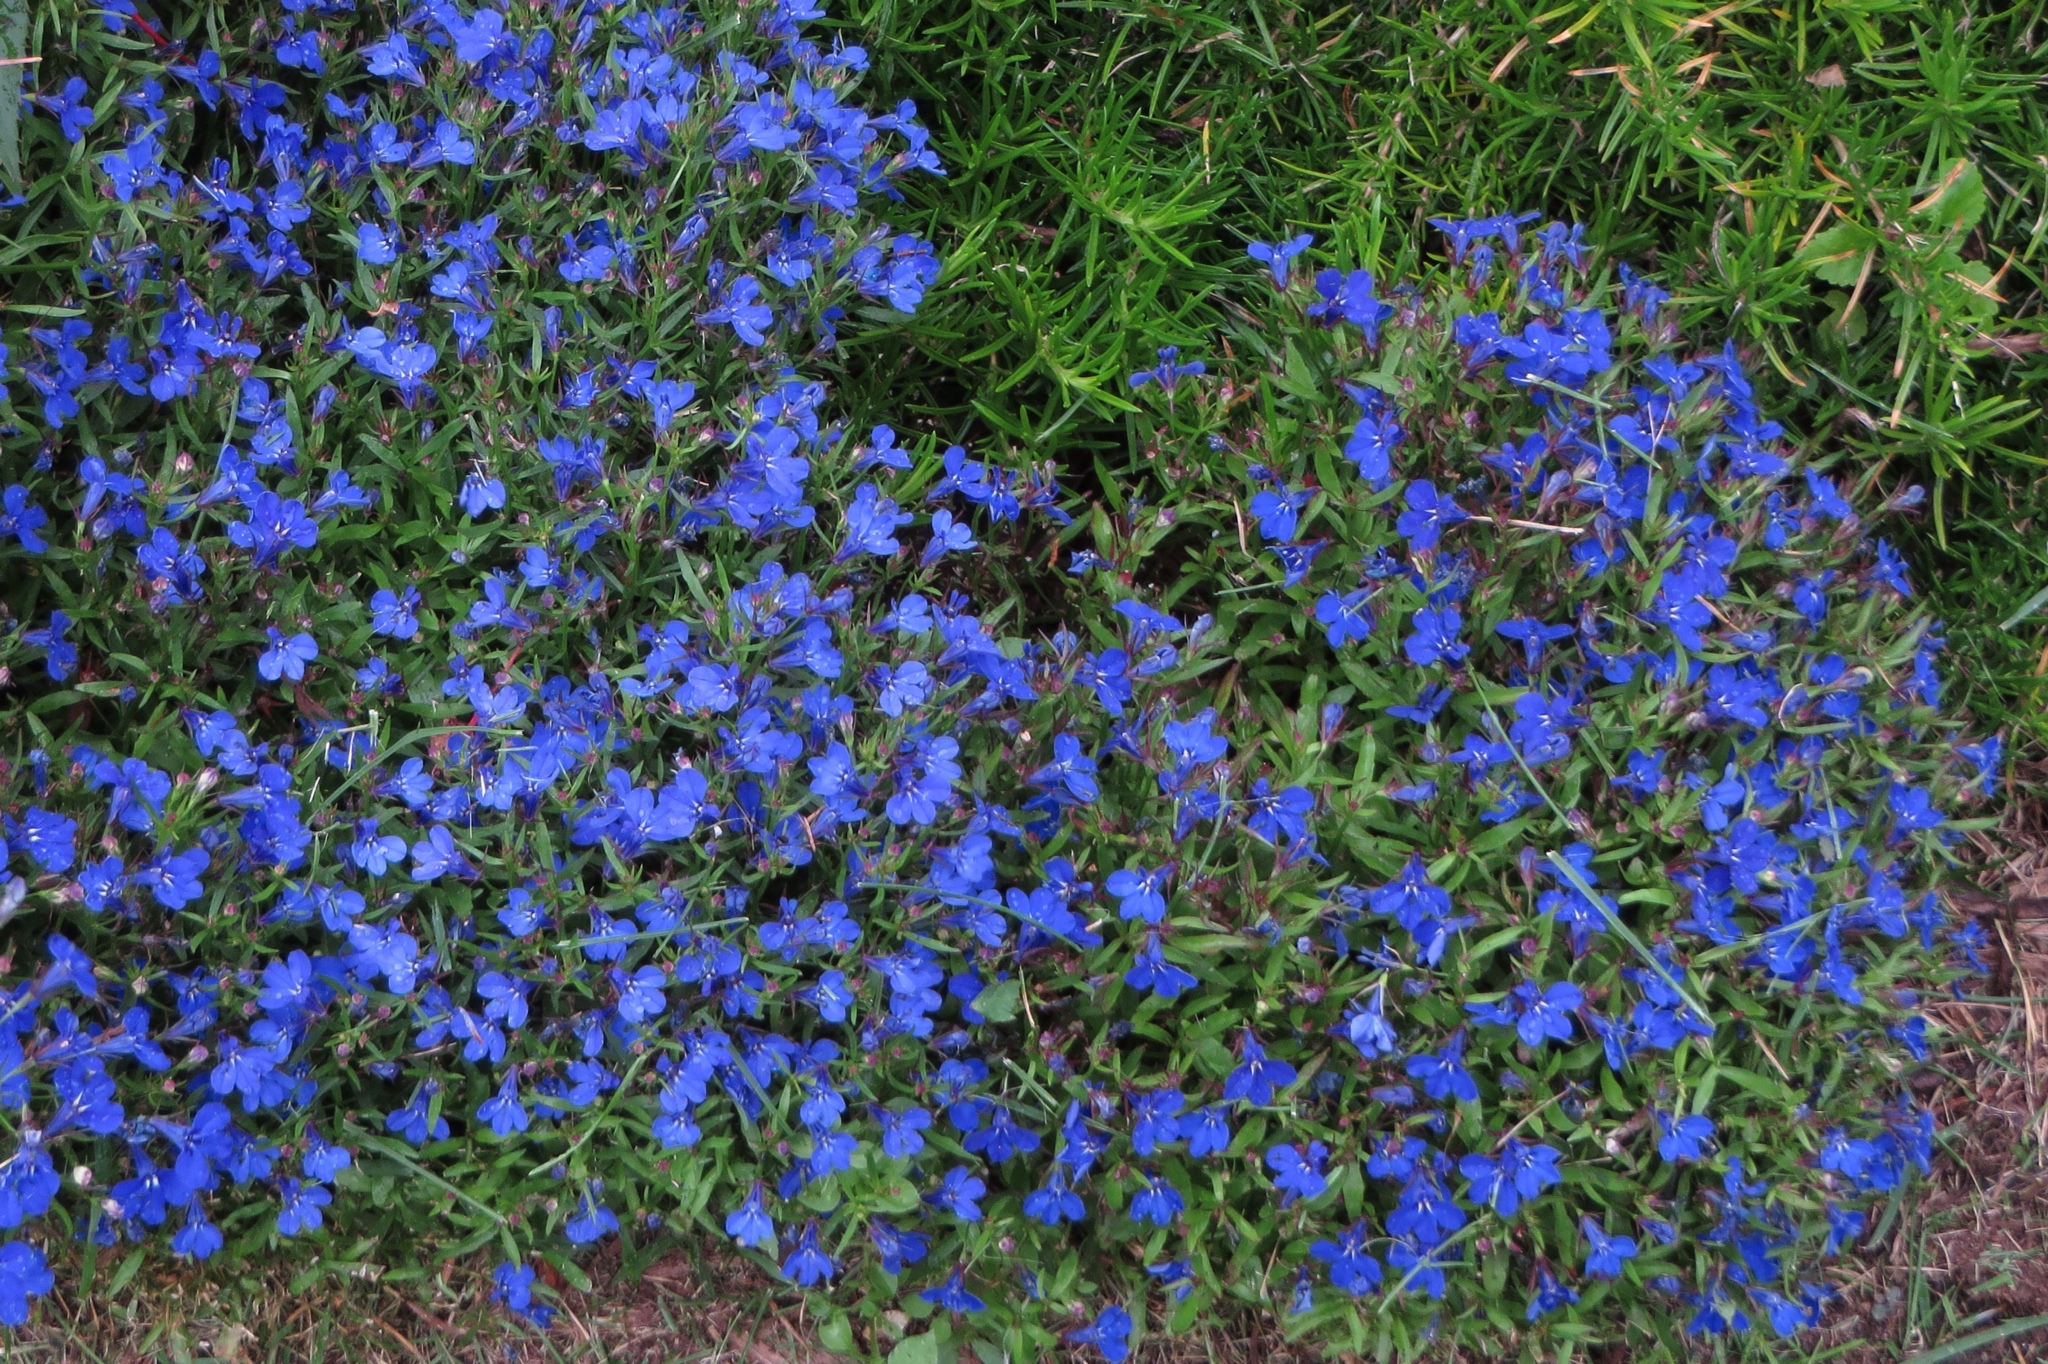 Other annuals jims garden world lobelia this a very nice small delicate plant with tiny flowers edging closely to true blue as well as a white and pink some varieties trail and others izmirmasajfo